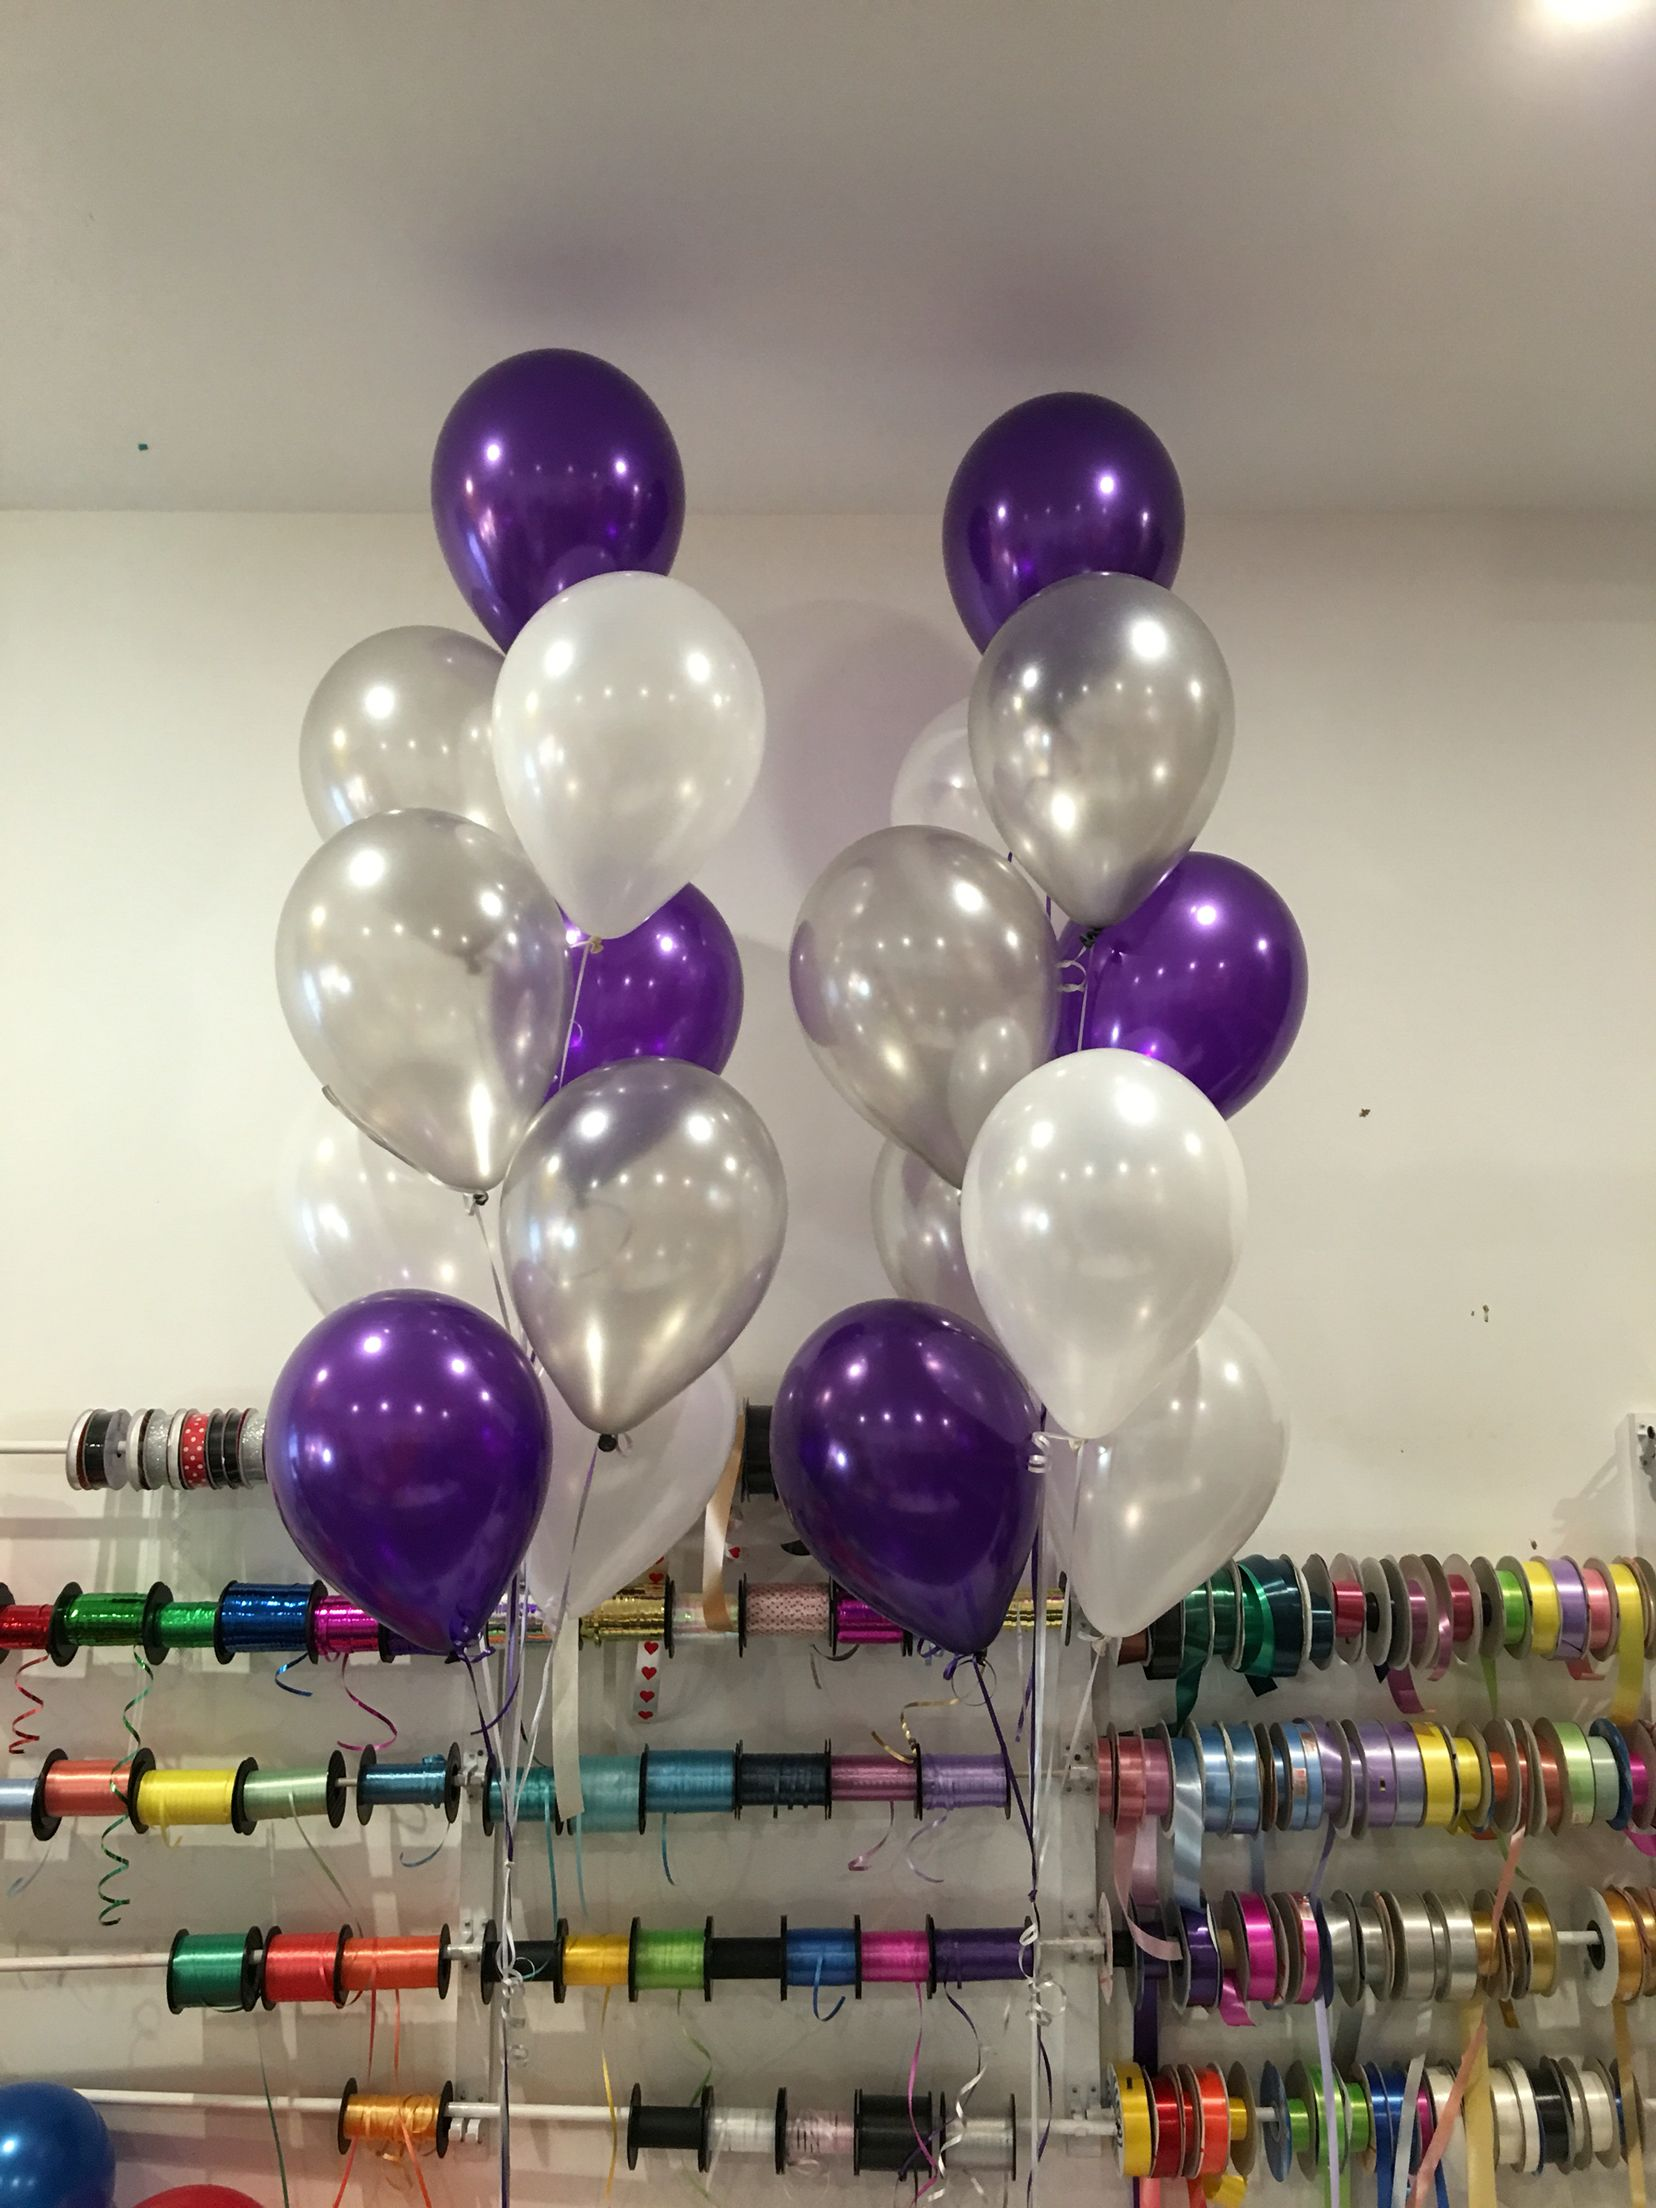 Mix of purple, silver and white latex balloons on a floor